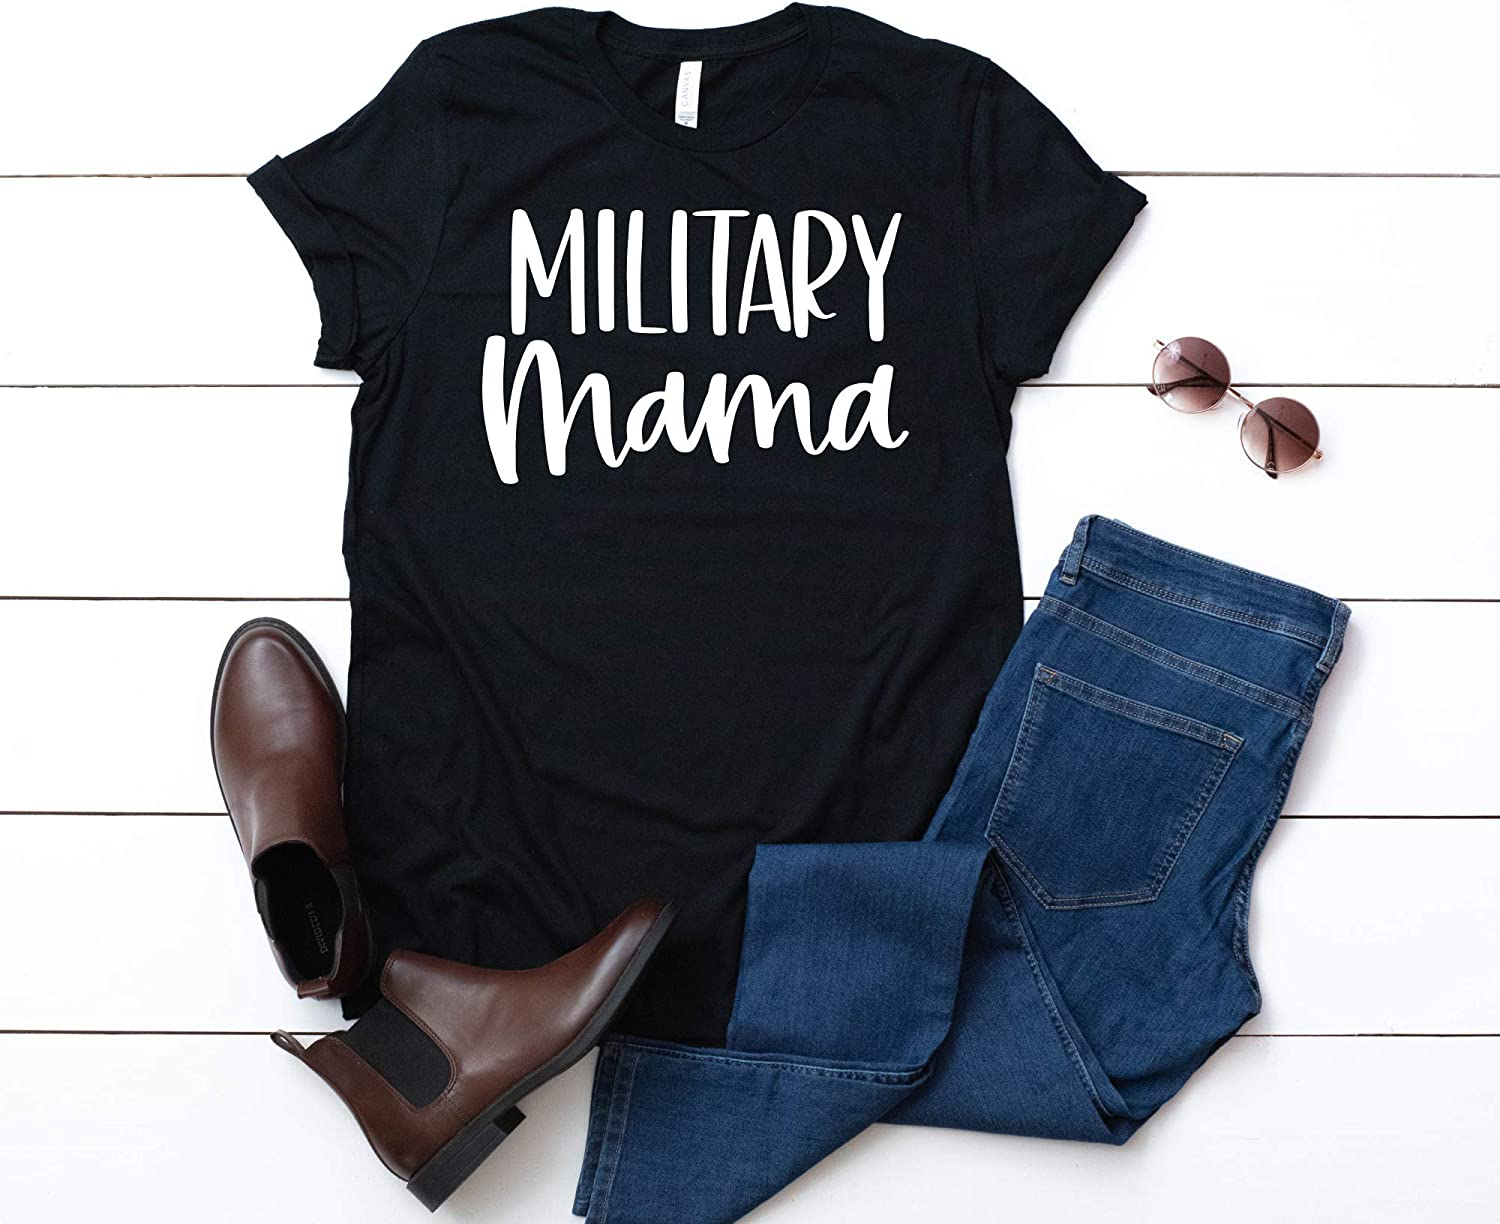 Military Ranking integrated 1st place Mama Womens Shirt Womans Air Force free Marines Army Navy